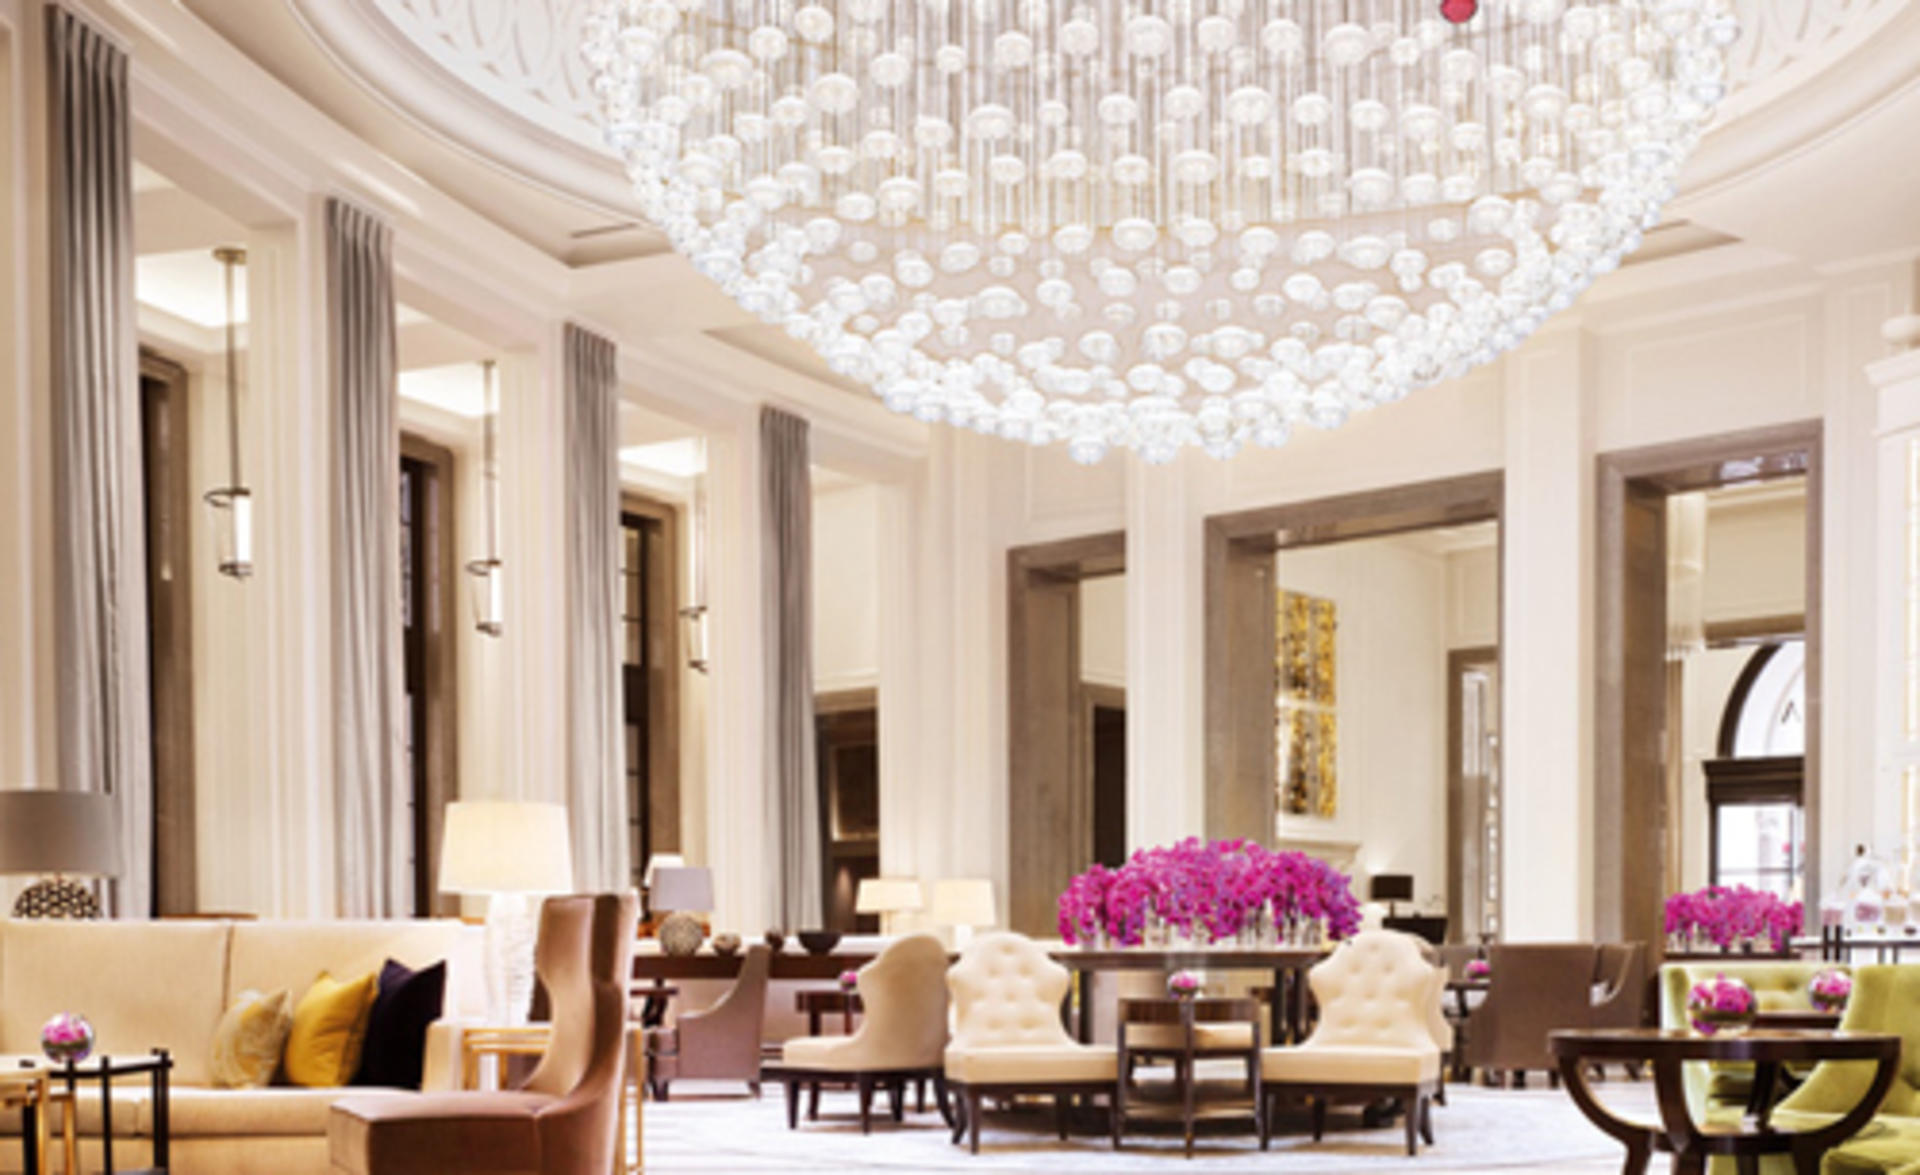 Corinthia_Hotel_London_The — — — — 月球 — — 酒吧